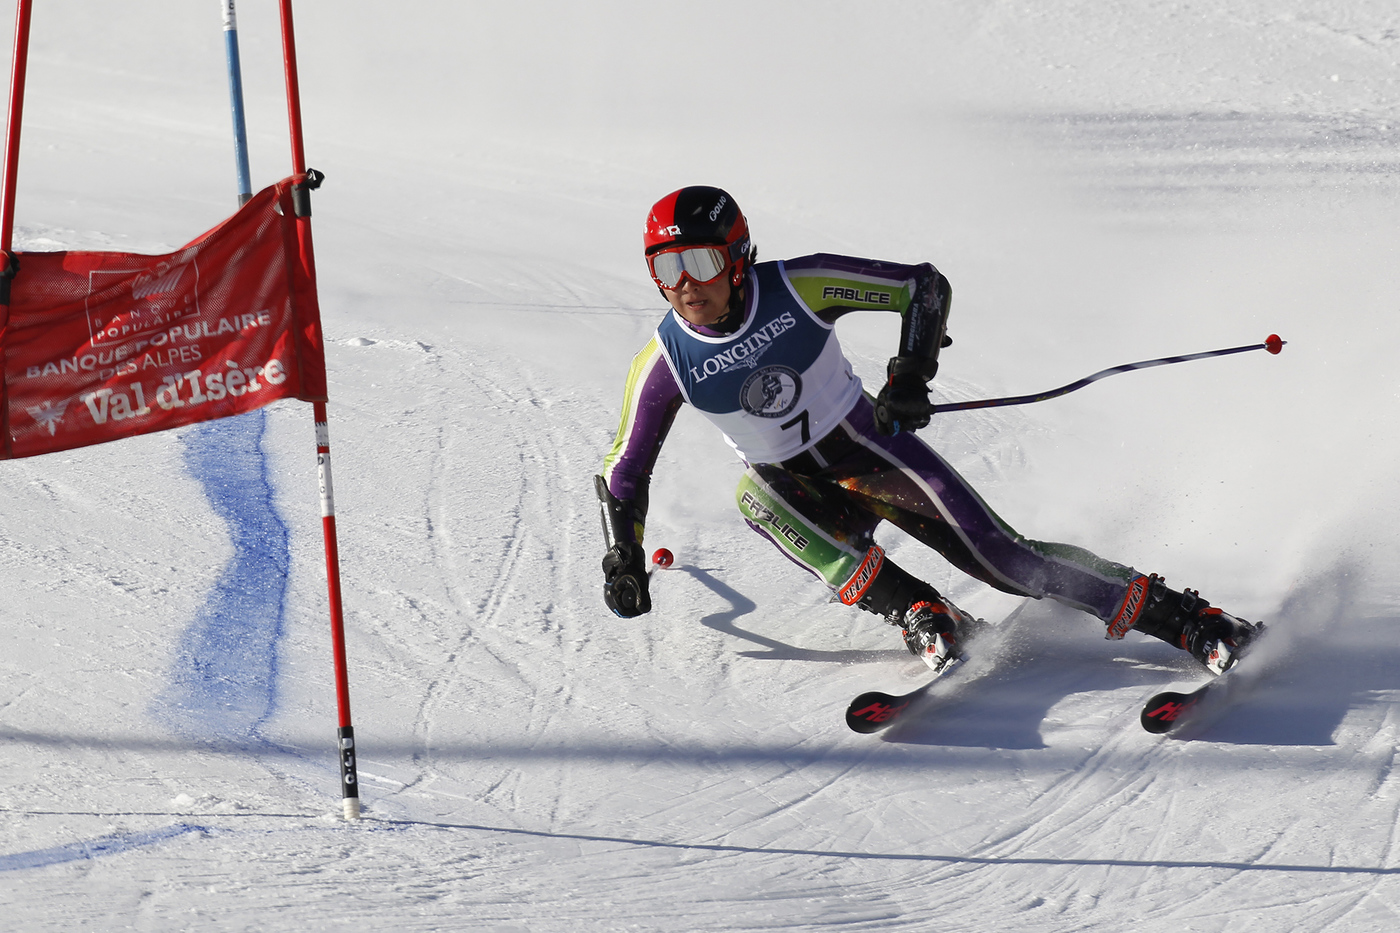 Longines Alpine Skiing Event: The Longines Future Ski Champion 2013 23